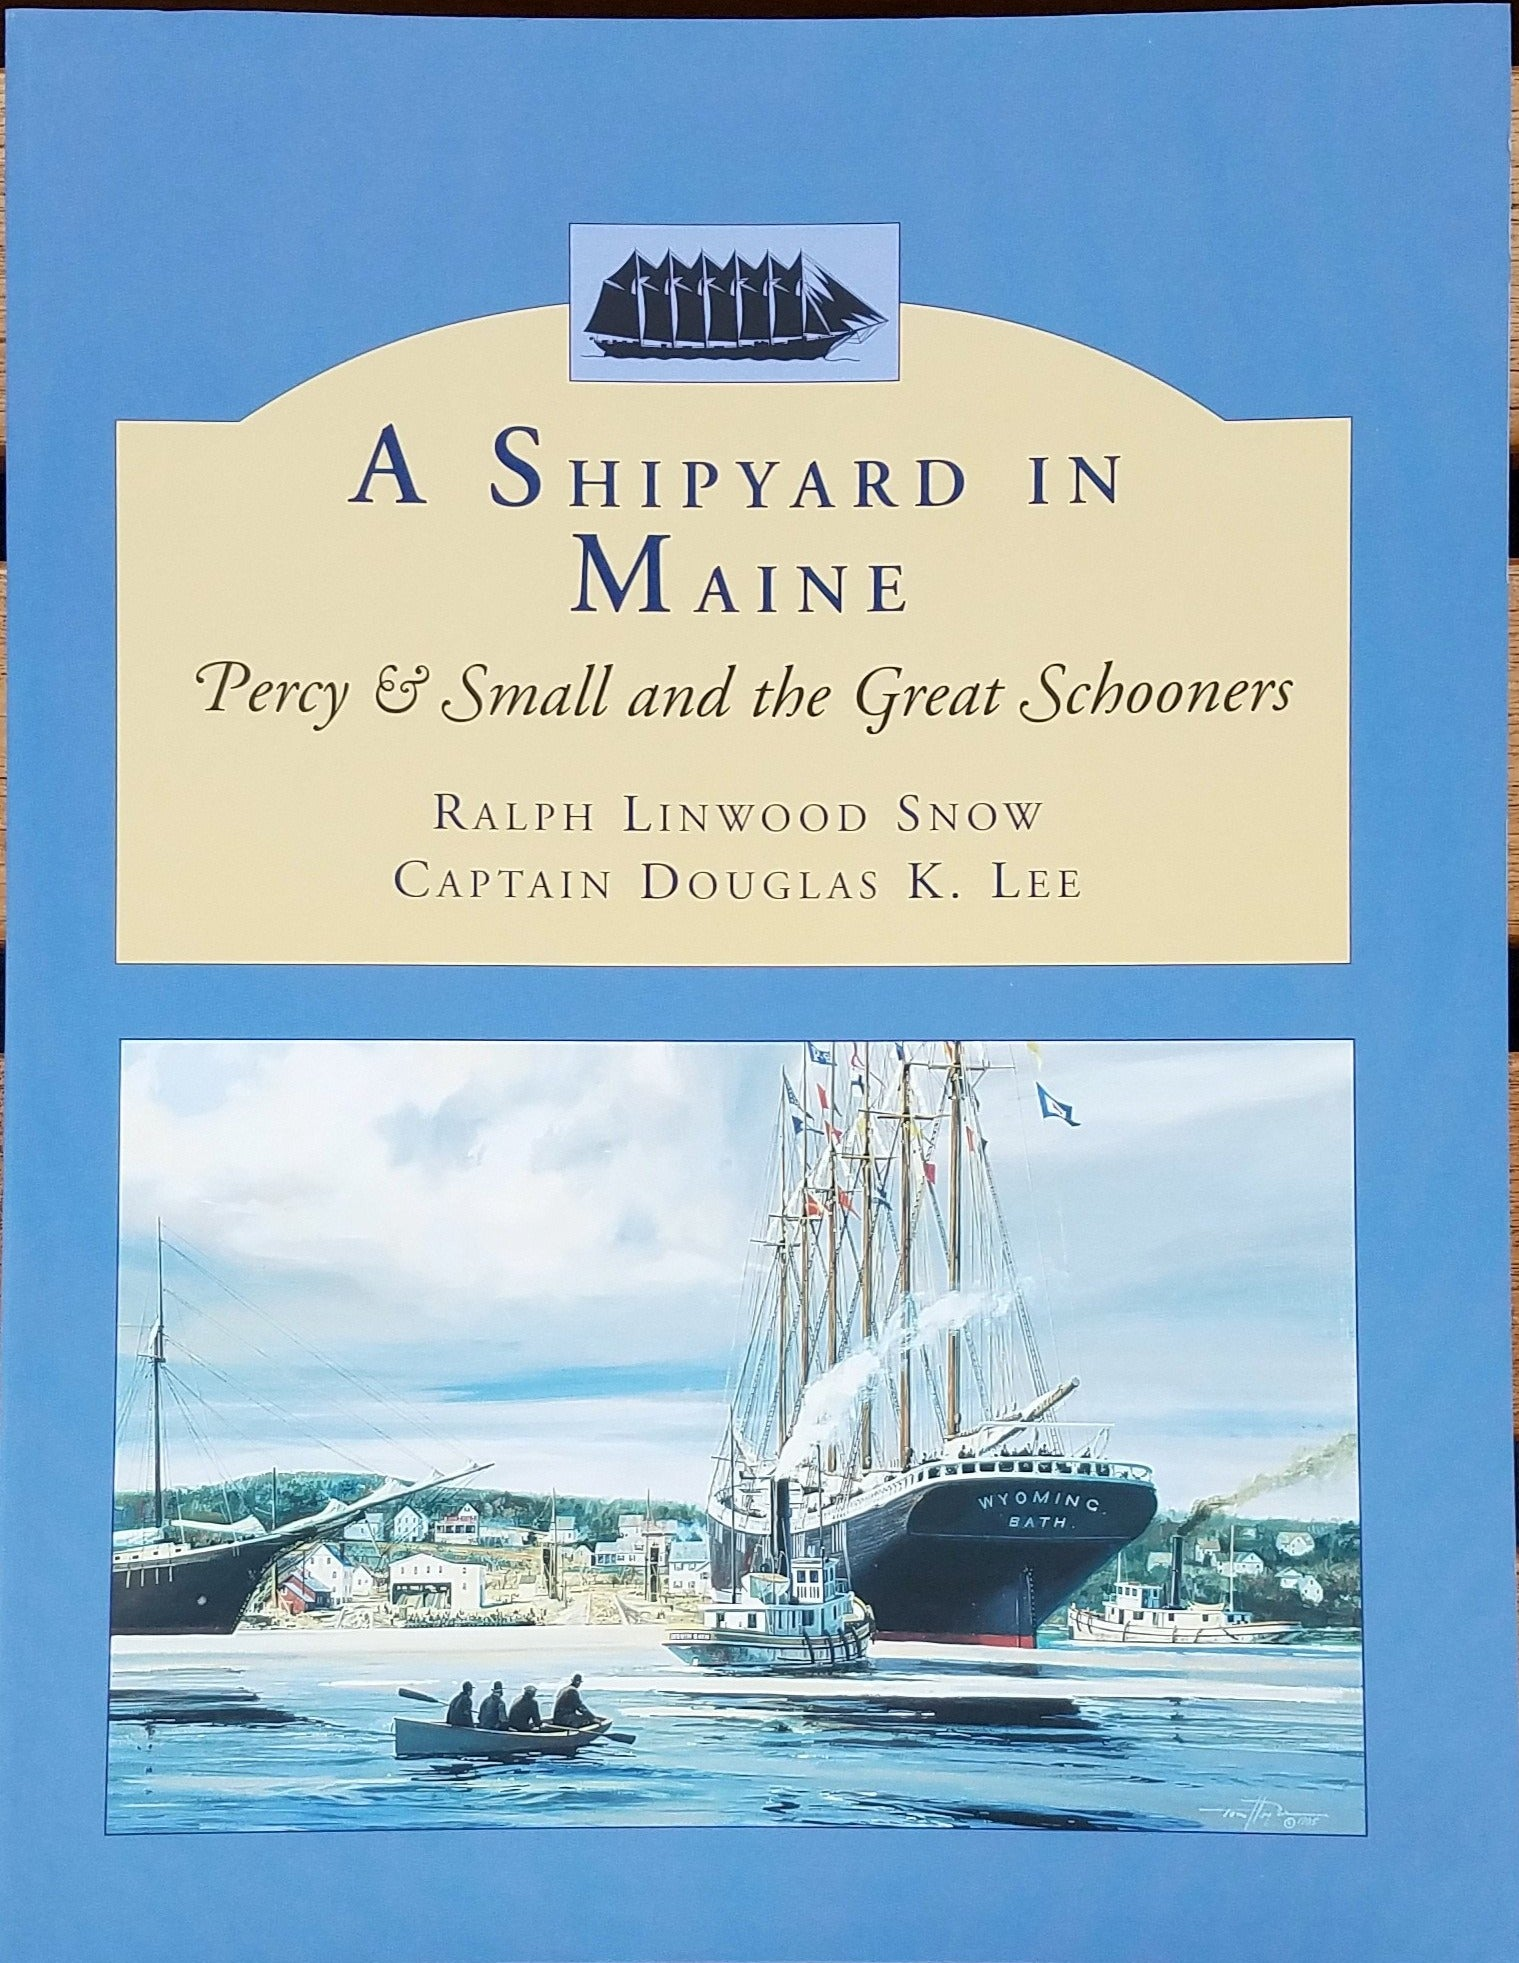 A Shipyard in Maine: Percy & Small and the Great Schooners by Ralph Linwood Snow and Captain Douglas K. Lee